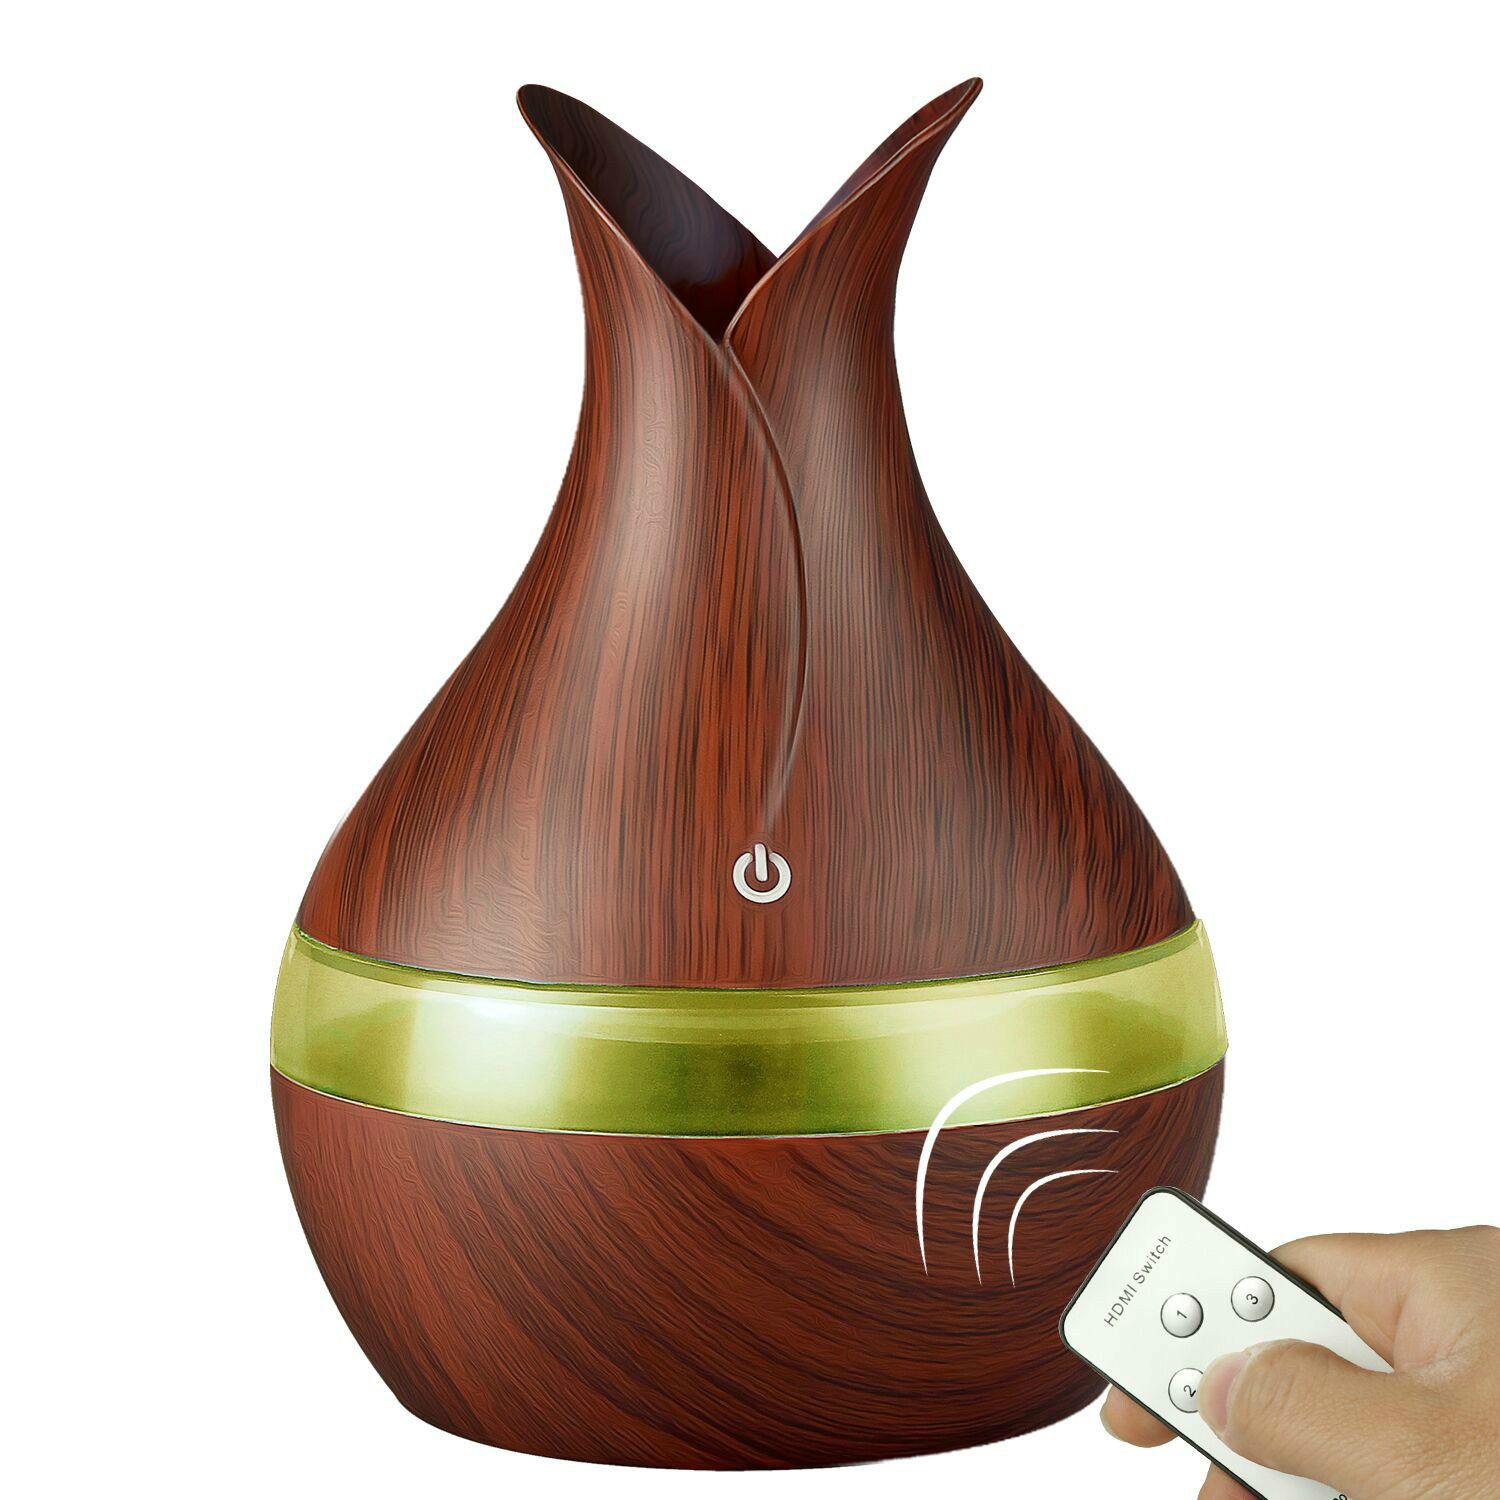 300ml Air Humidifier Essential Oil Diffuser Aroma Lamp Aromatherapy Electric Aroma Mist Maker for Home Yoga Office Spa Bedroom